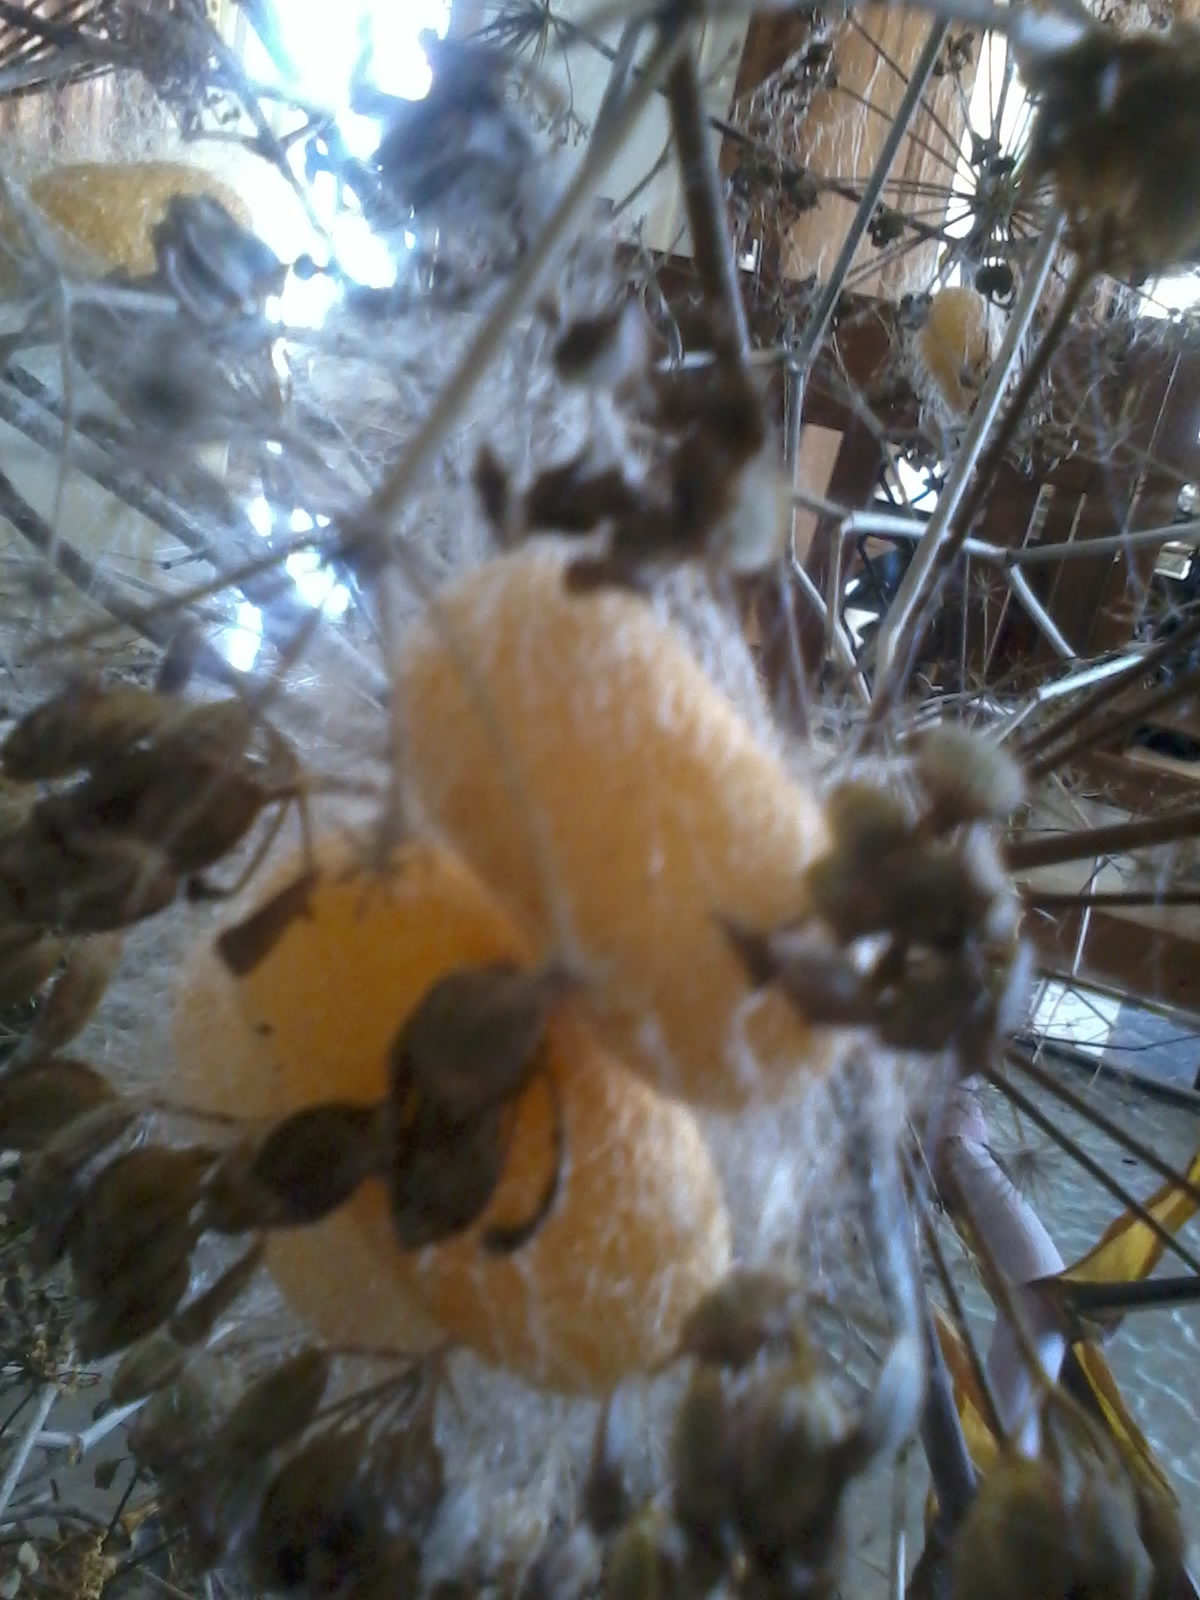 Silk cocoons